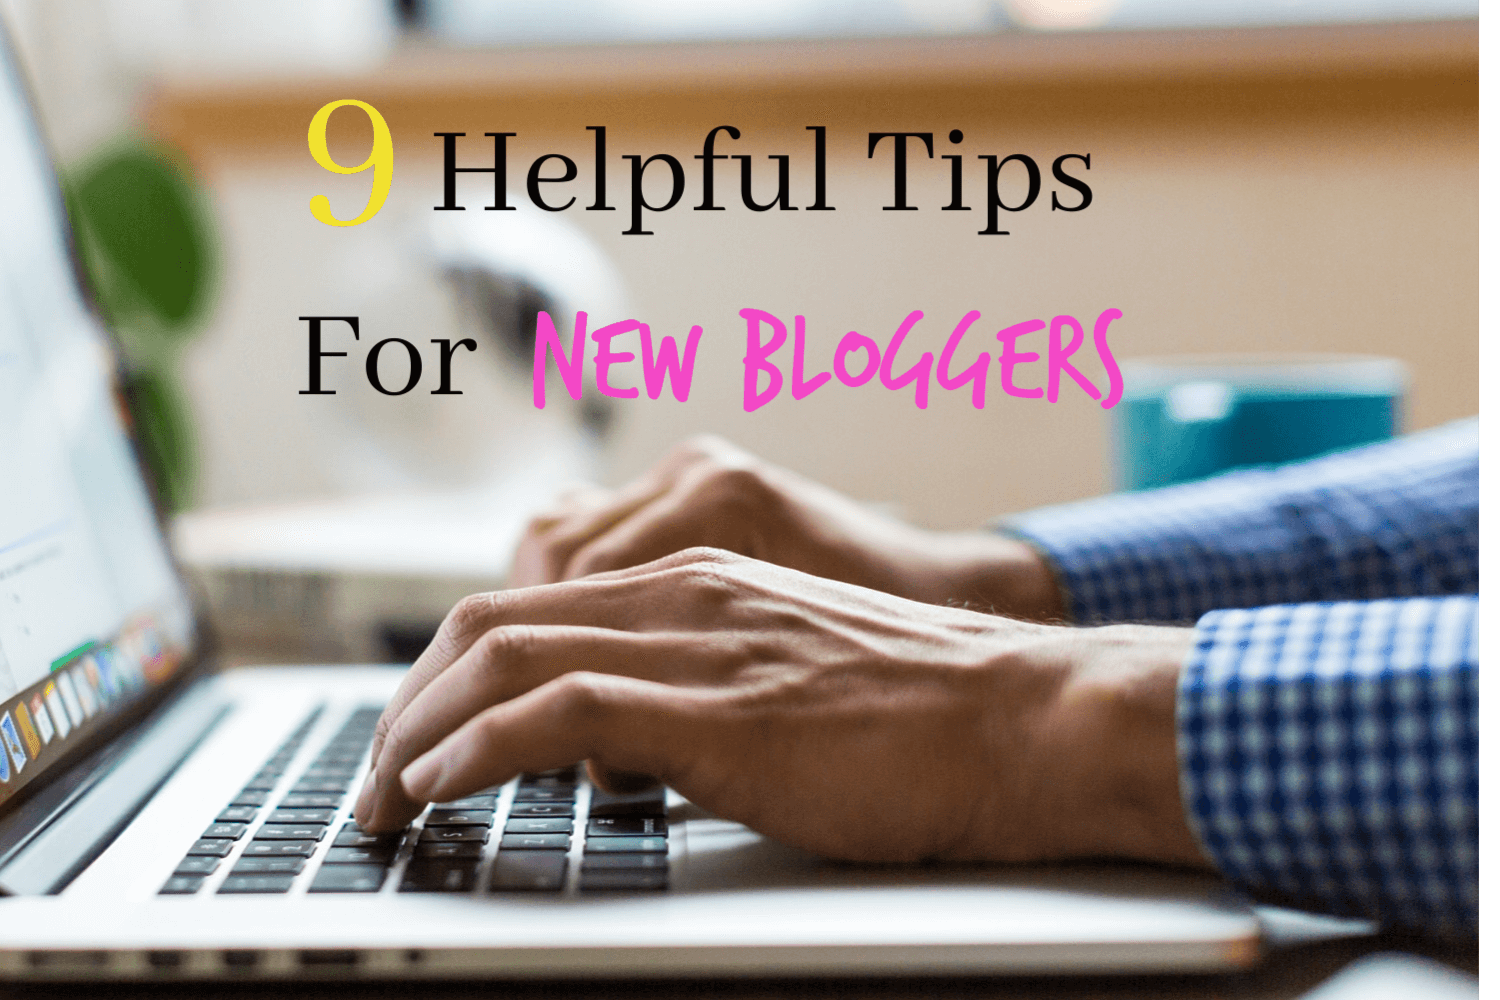 9 Helpful Blogging Tips For New Bloggers